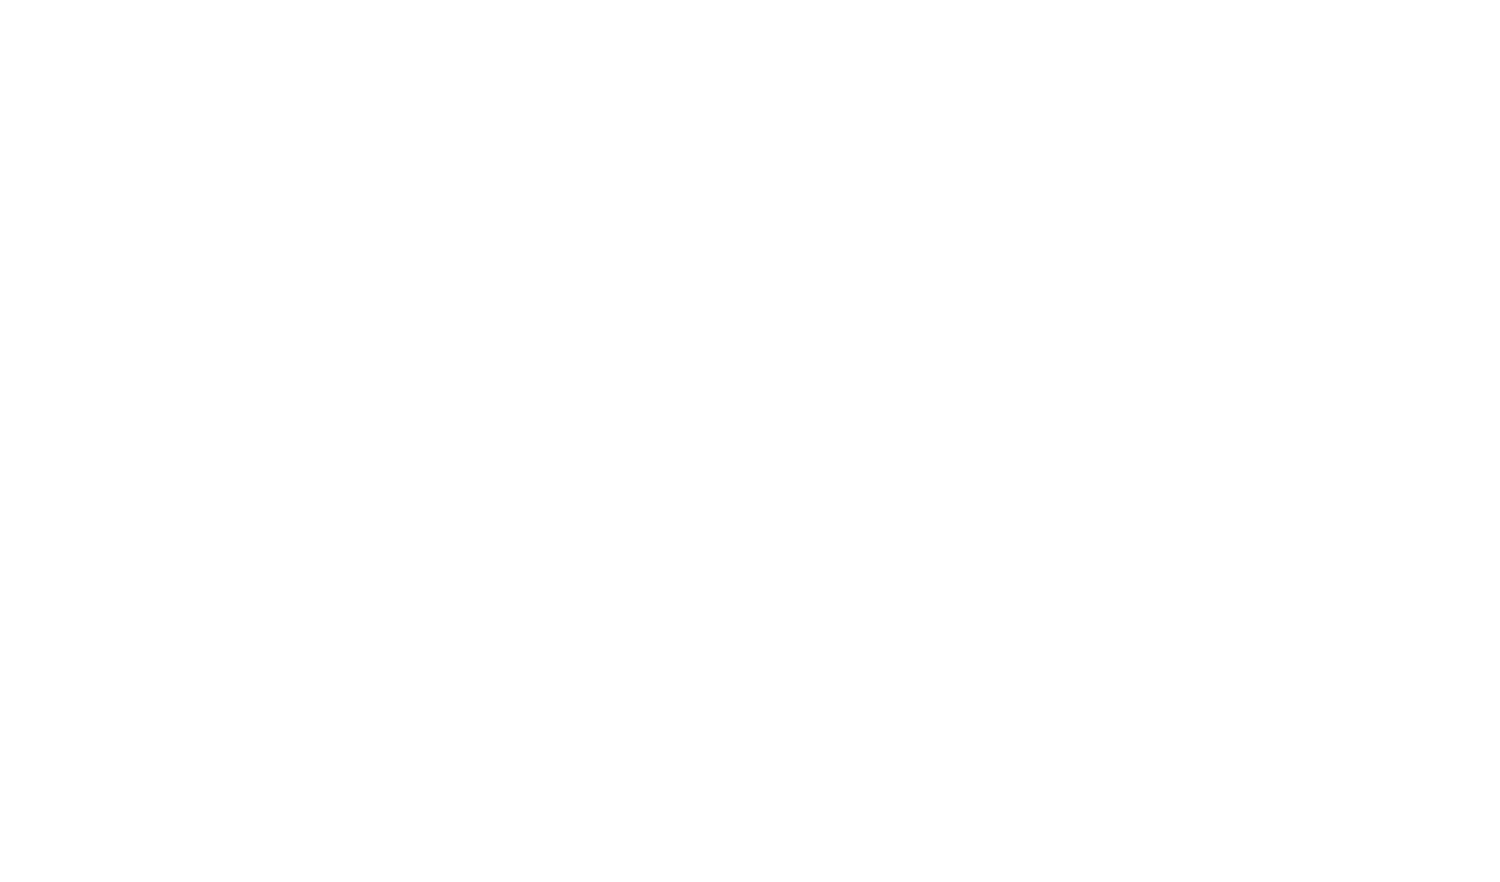 Gilliam & Associates